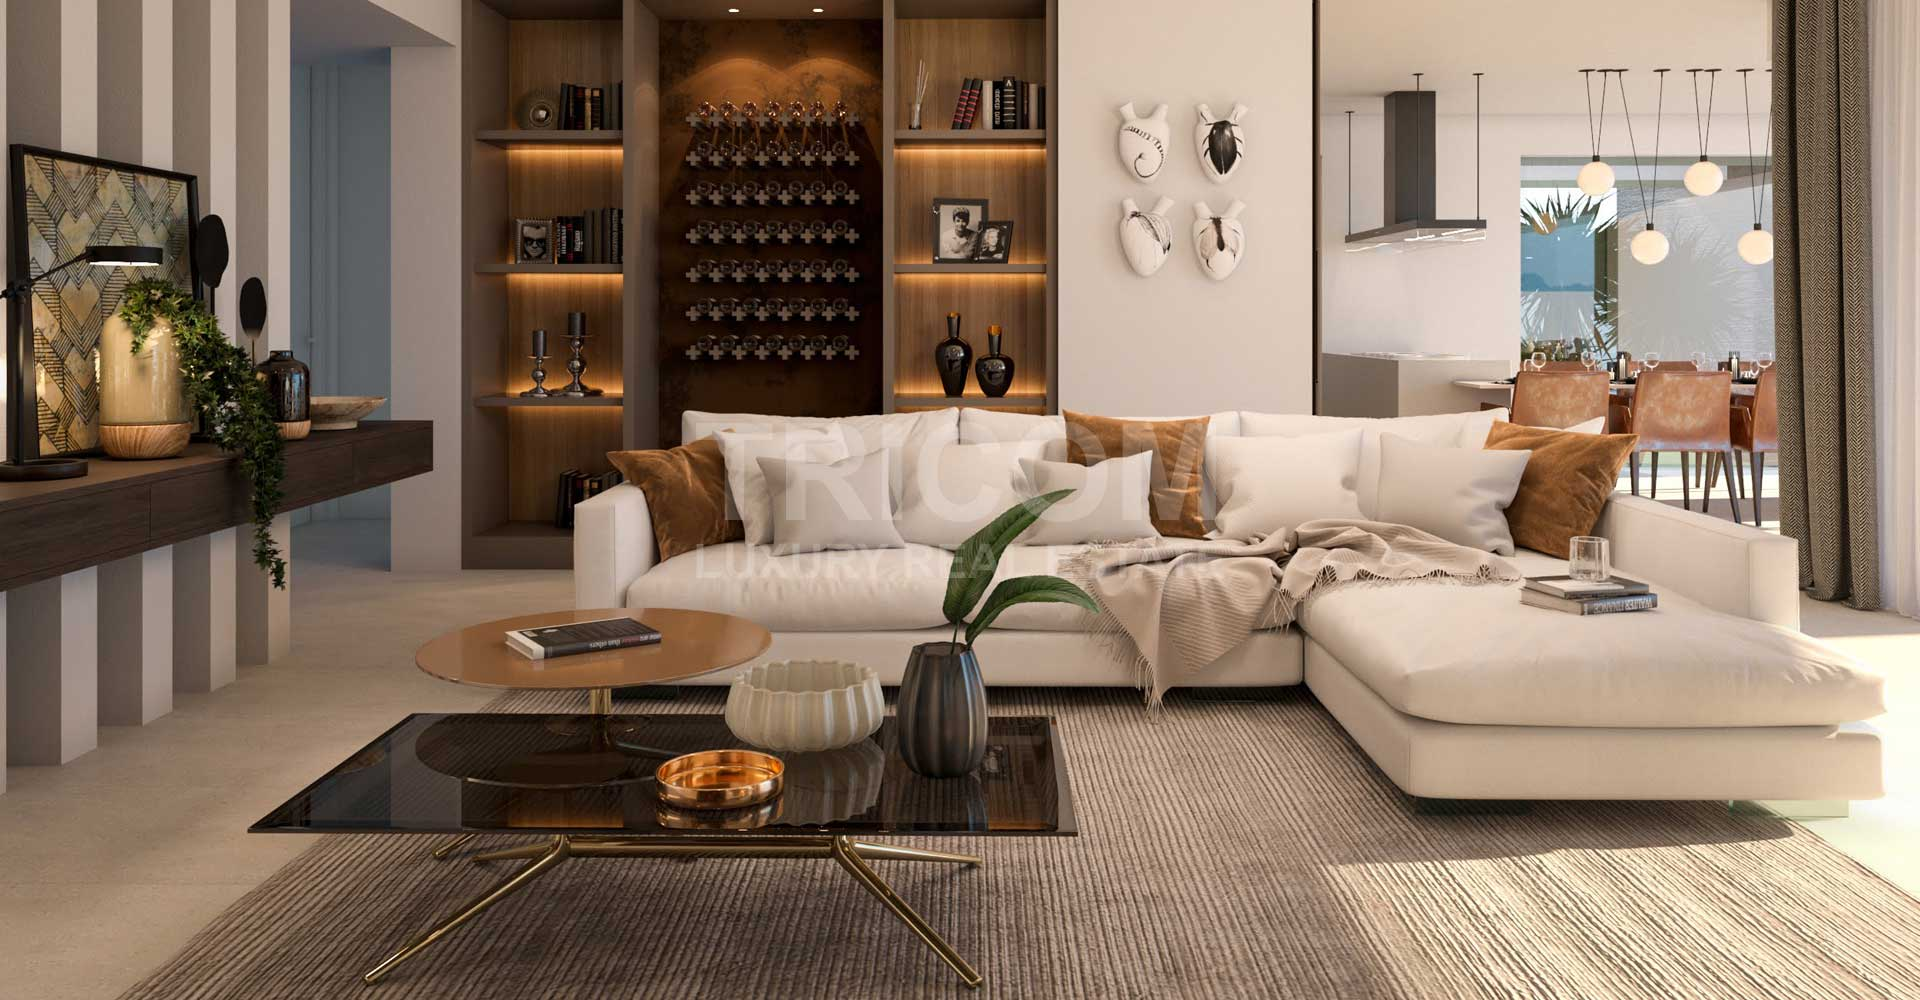 Kings hills living room